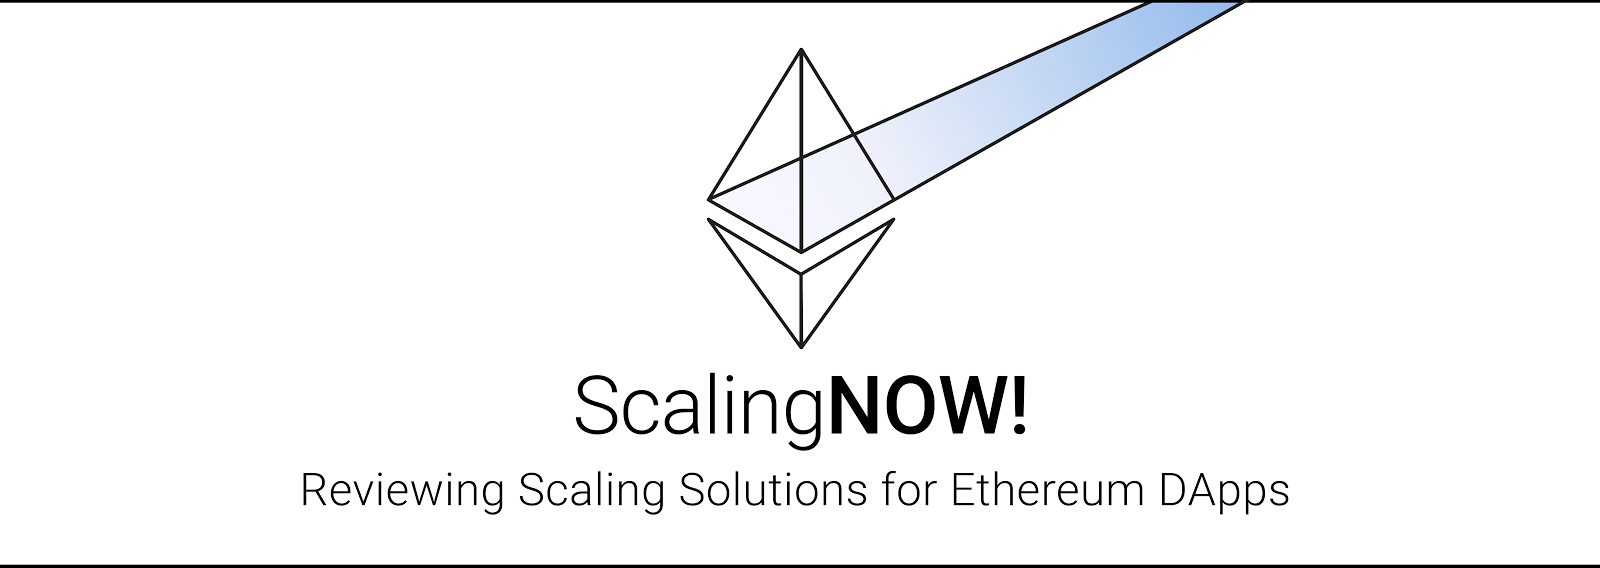 ScalingNOW! Interview 4: Alex Miller from Grid+ on Trustless